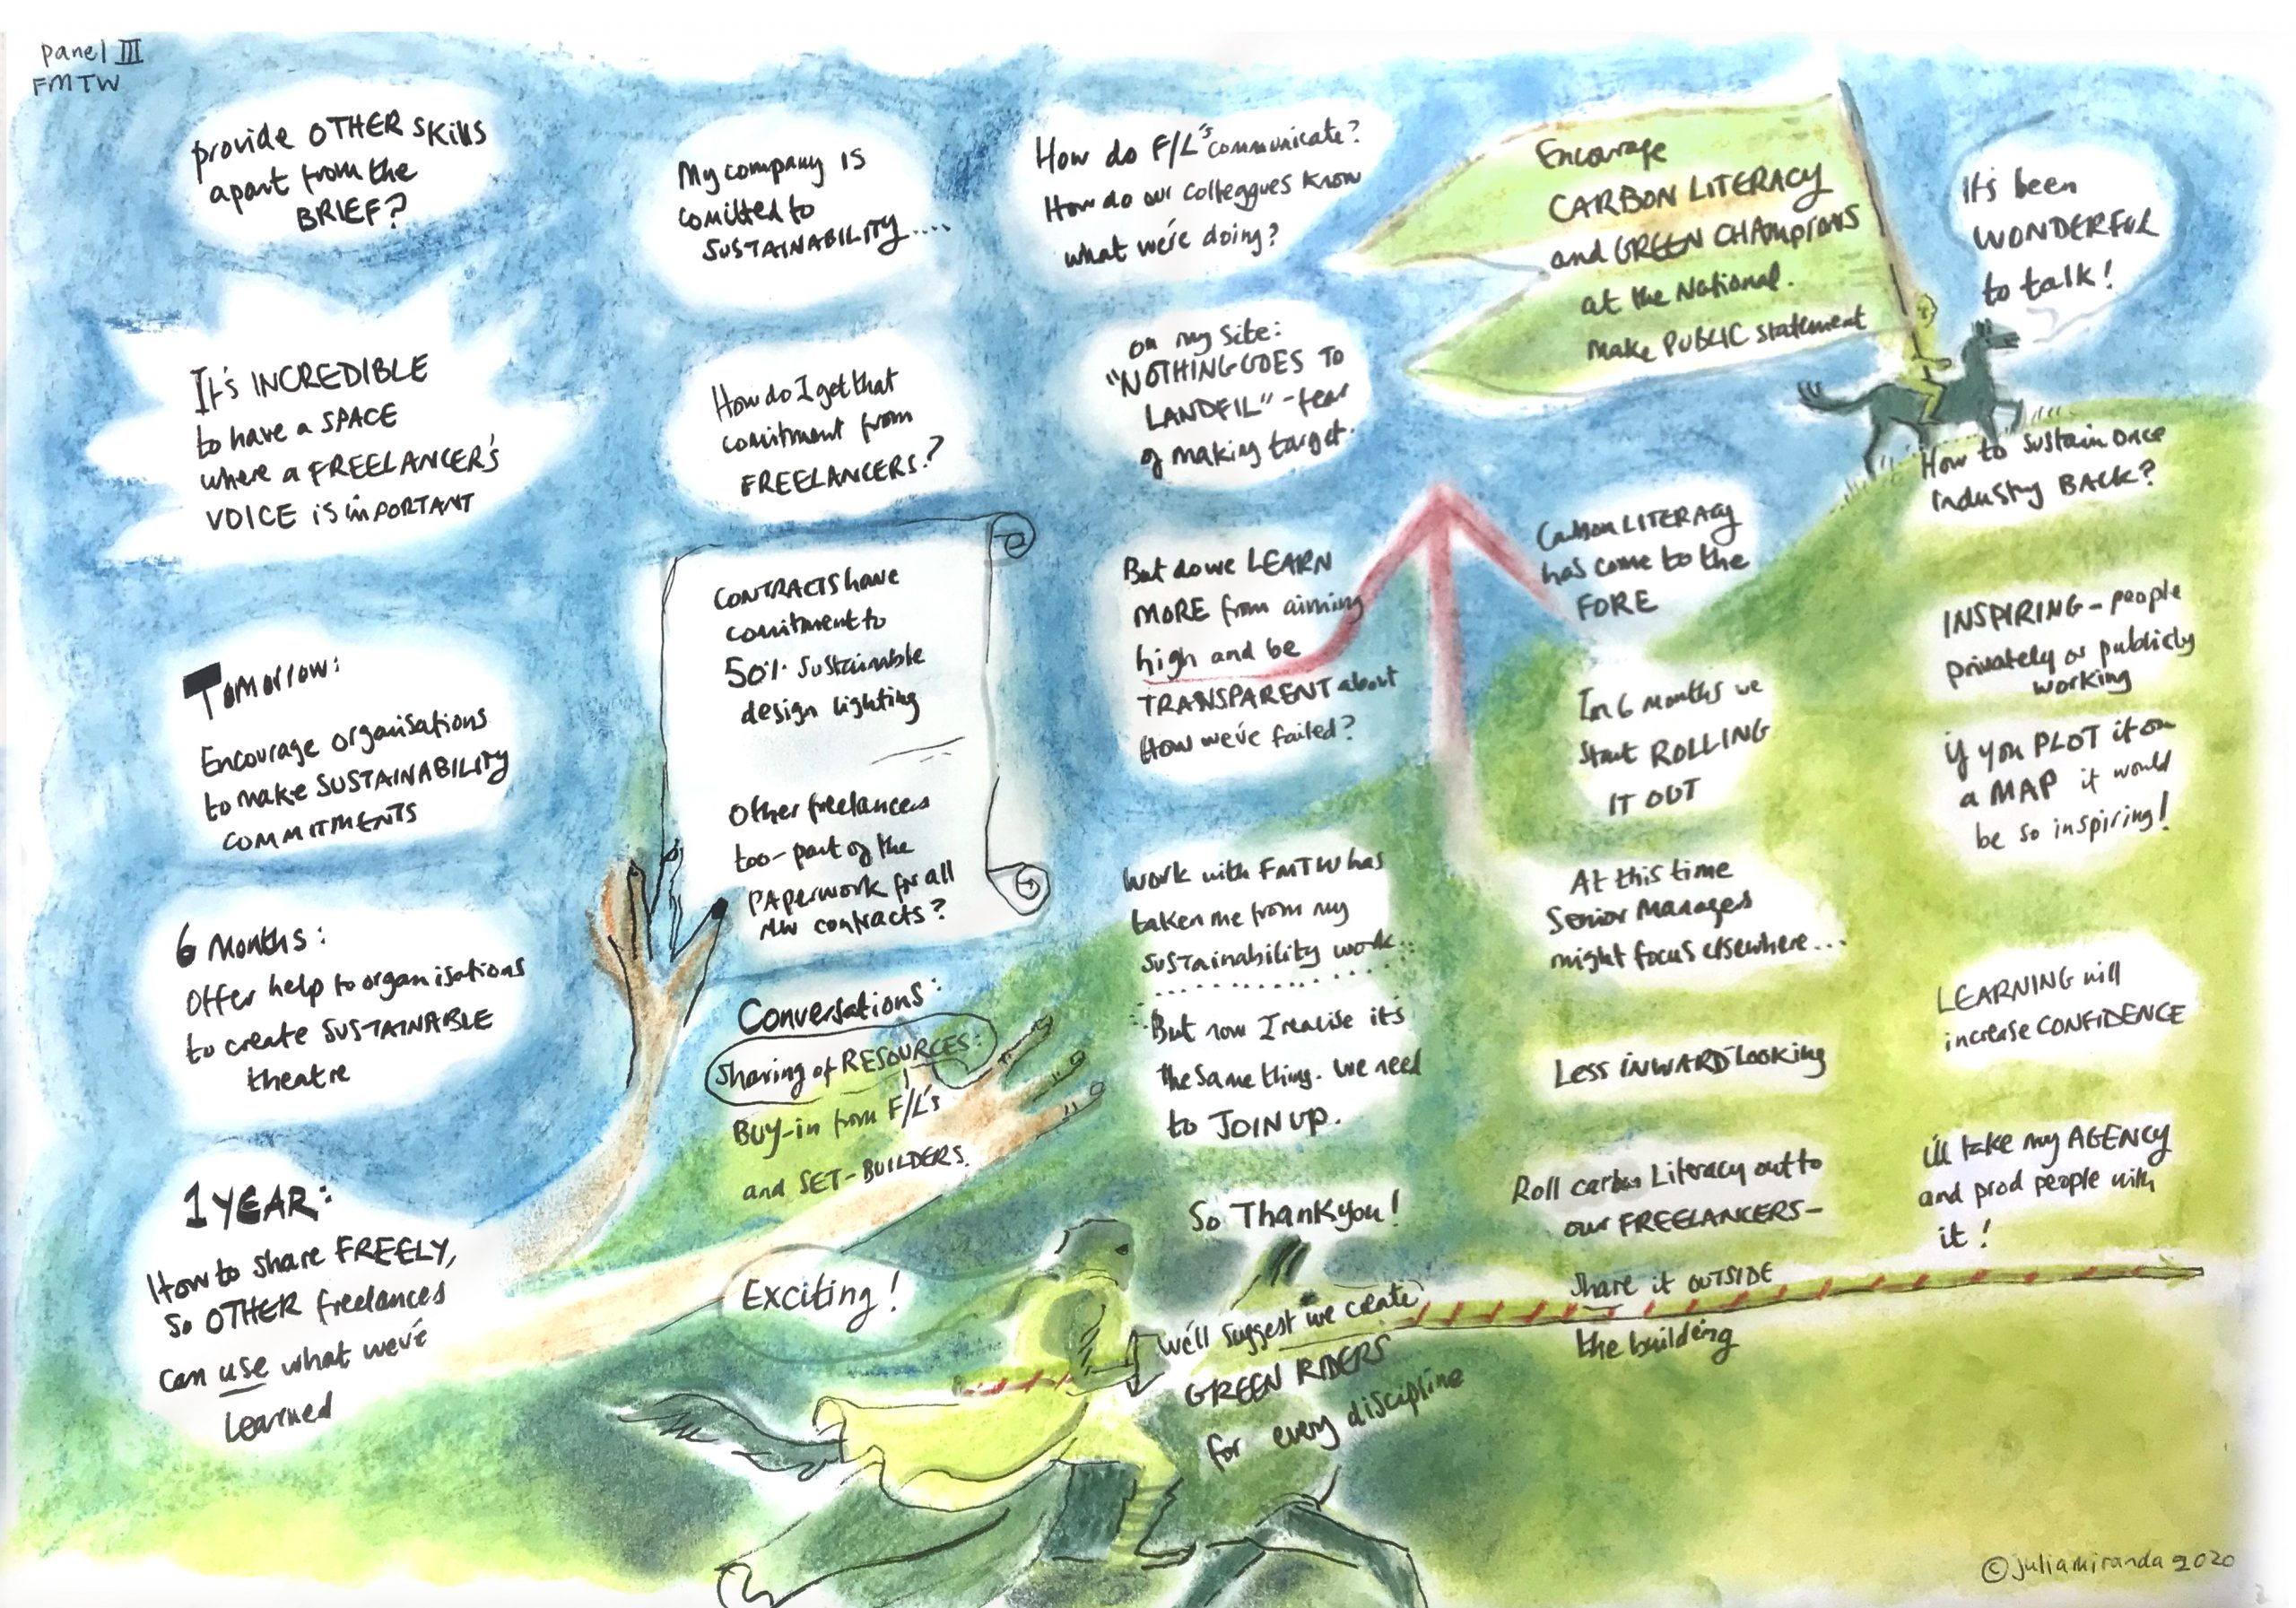 Graphic notes – panel 03